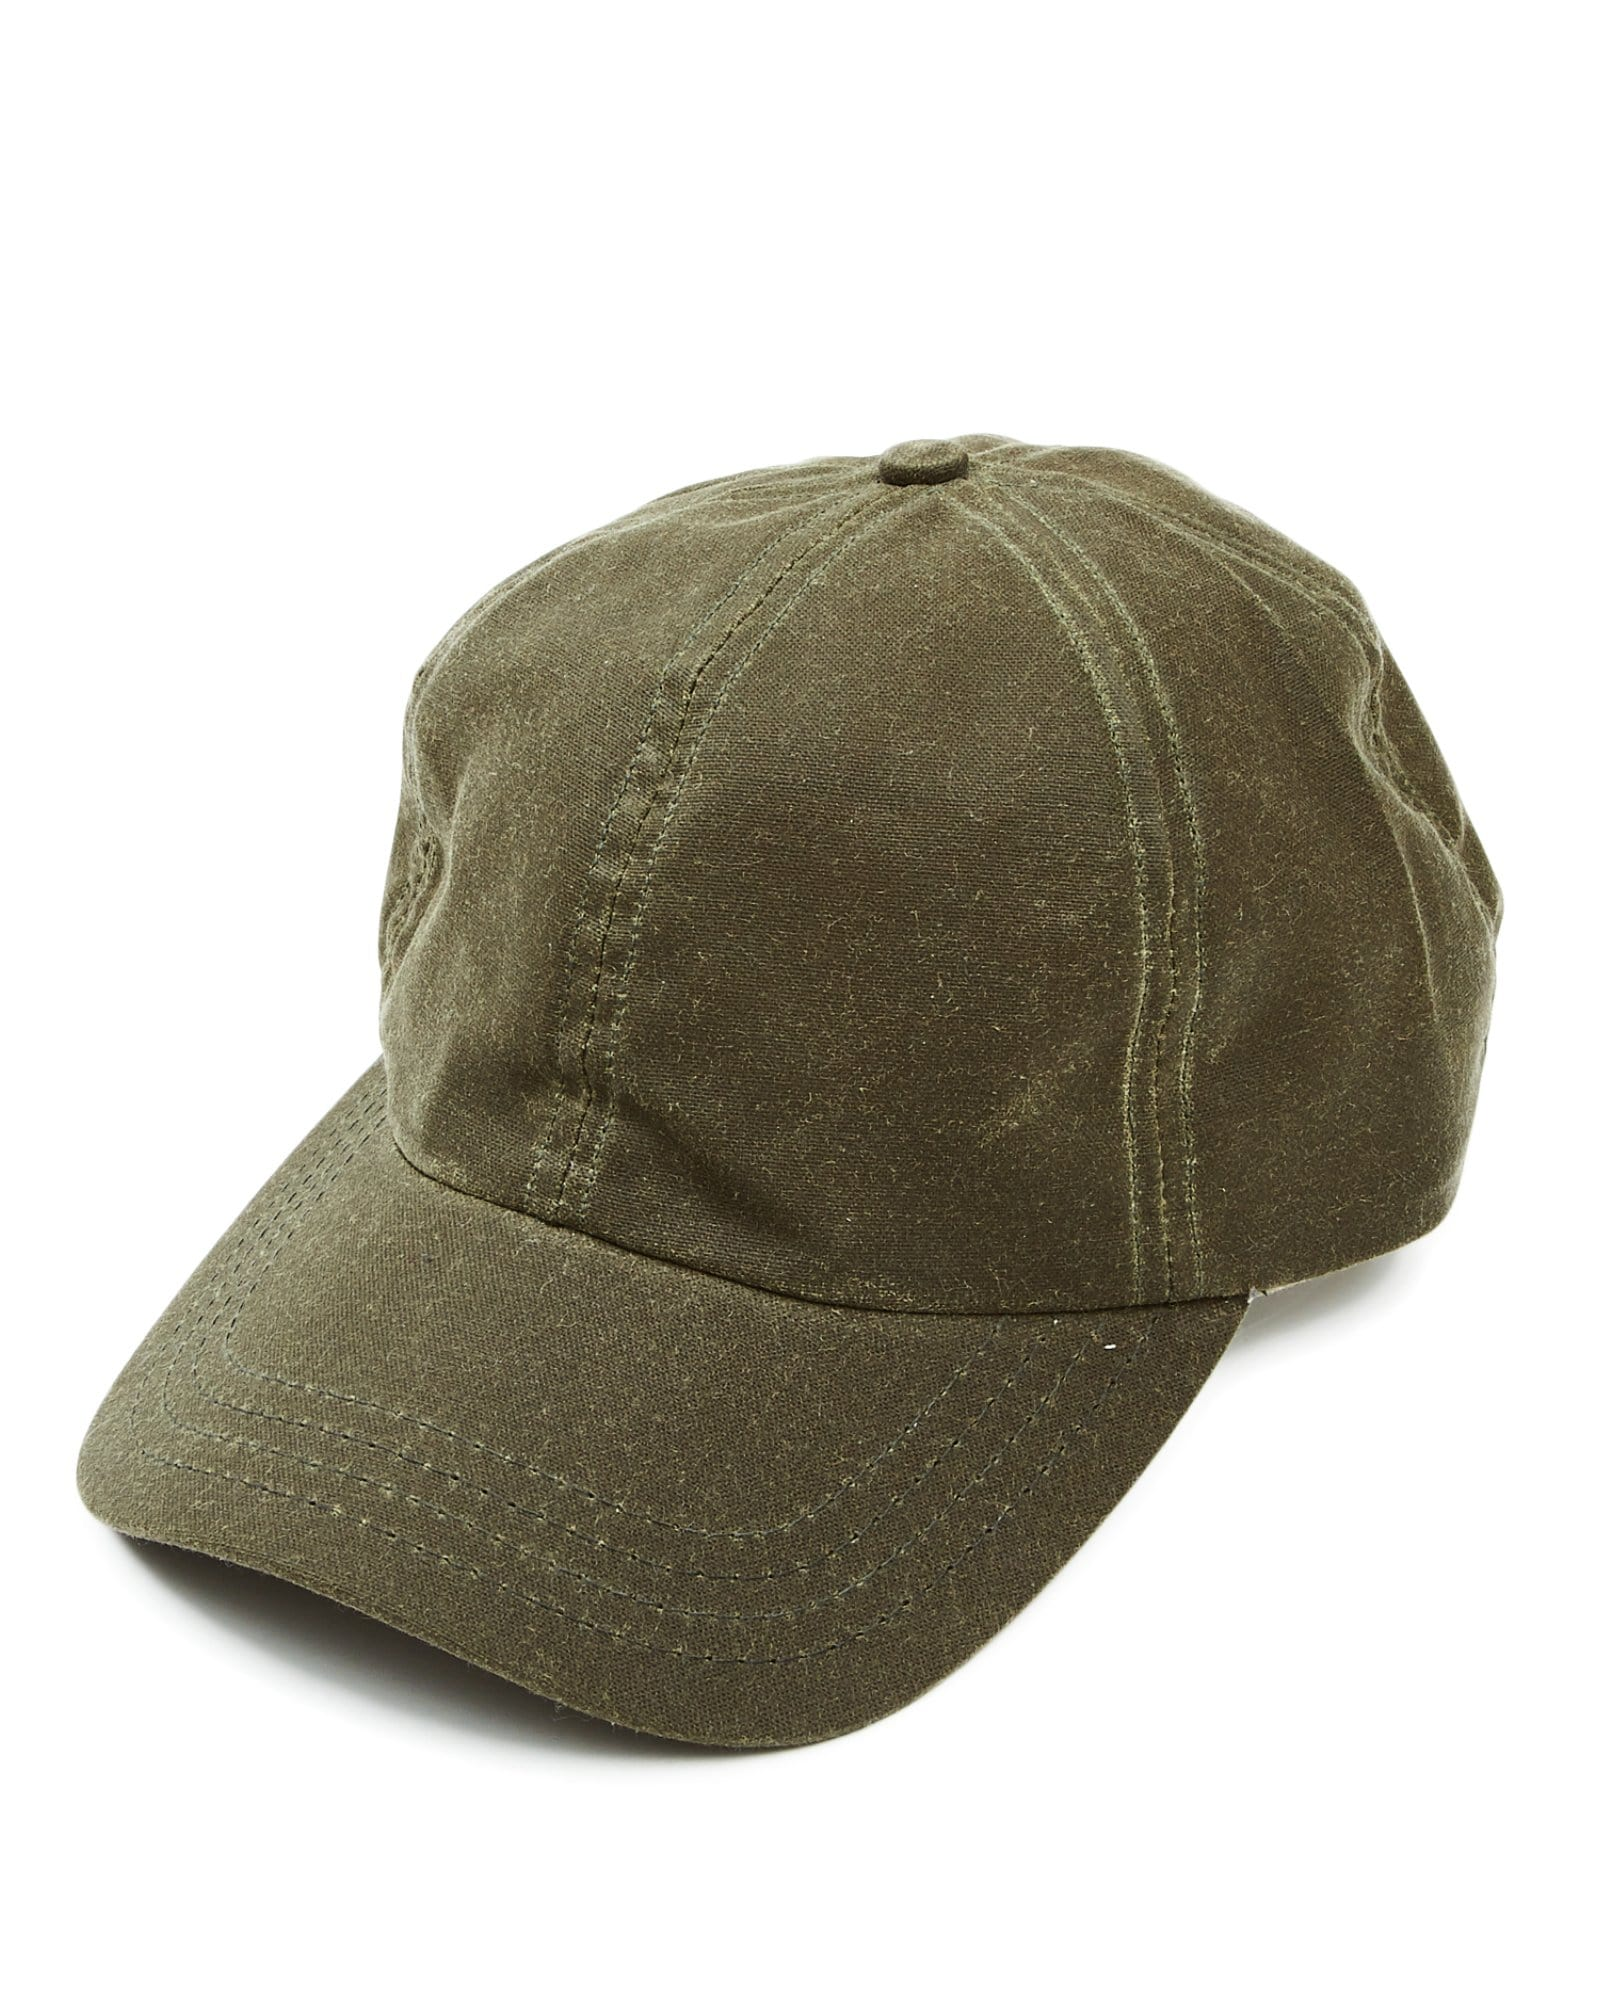 Olive Waxed Waterproof Cap